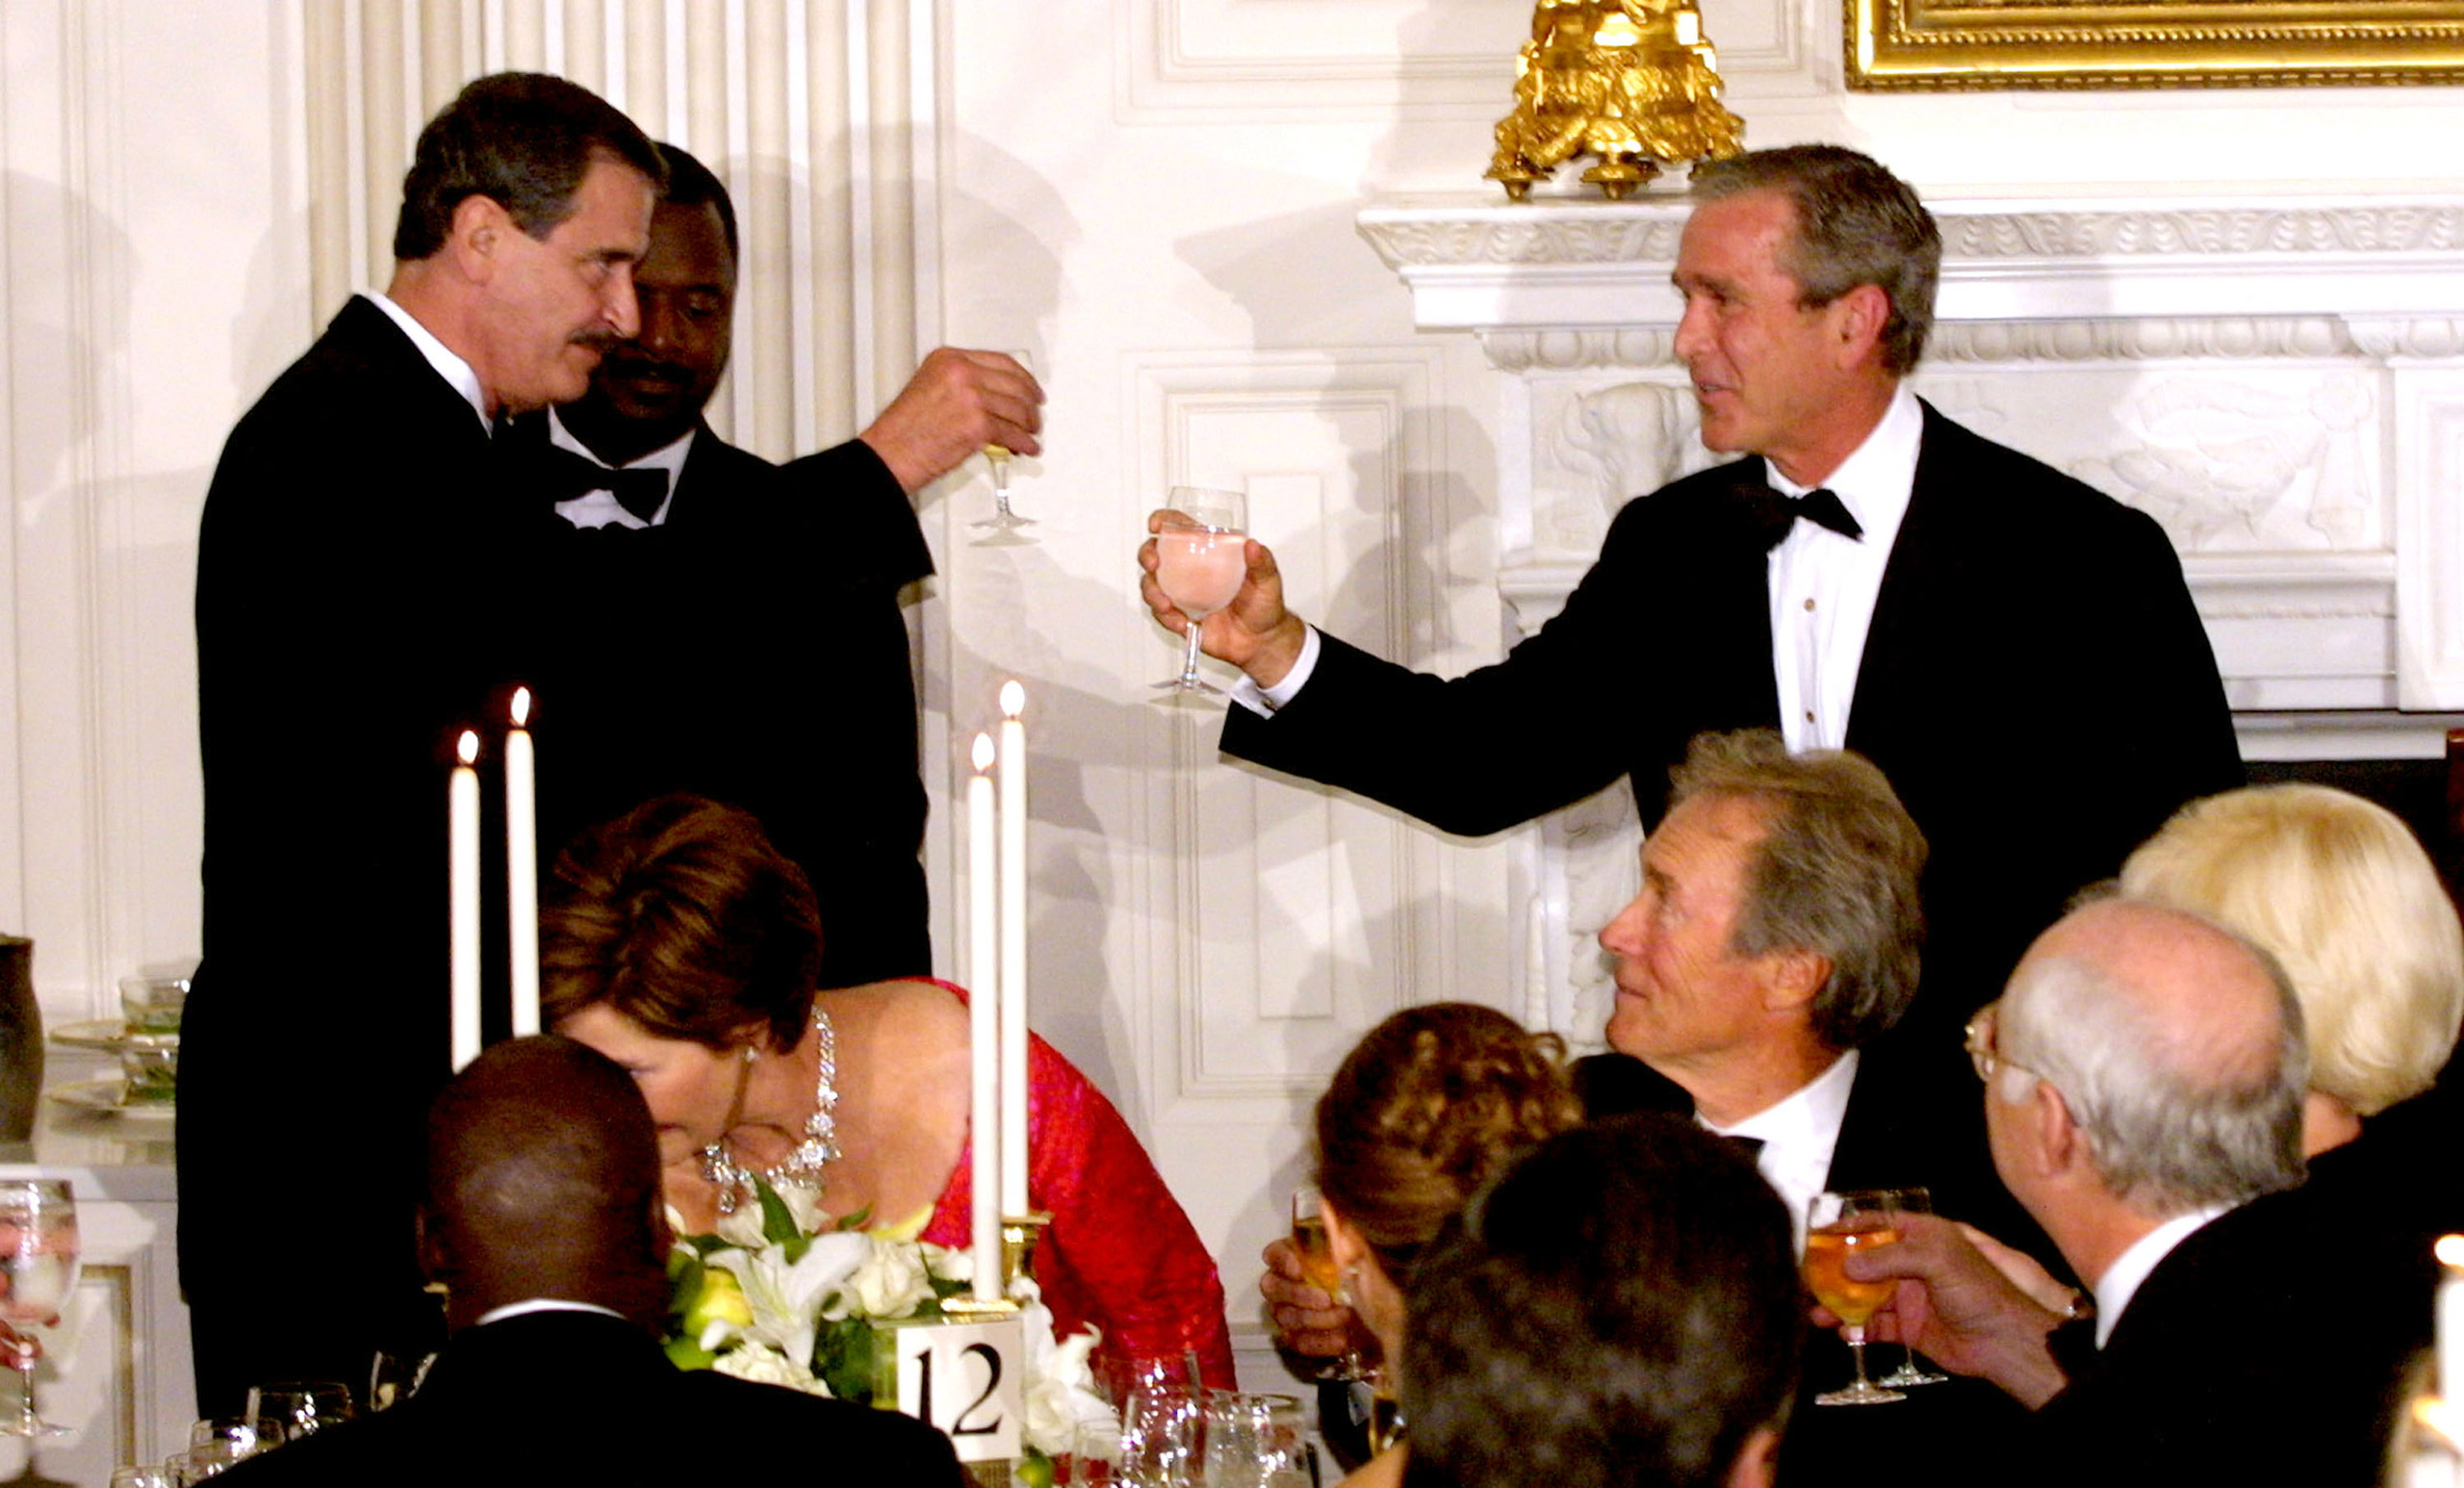 President George W. Bush and Mexican President Vicente Fox raise their glasses in a toast Sept. 5, 2001 at a state dinner for Fox at the White House in Washington, DC. Actor Clint Eastwood is seated at the right.